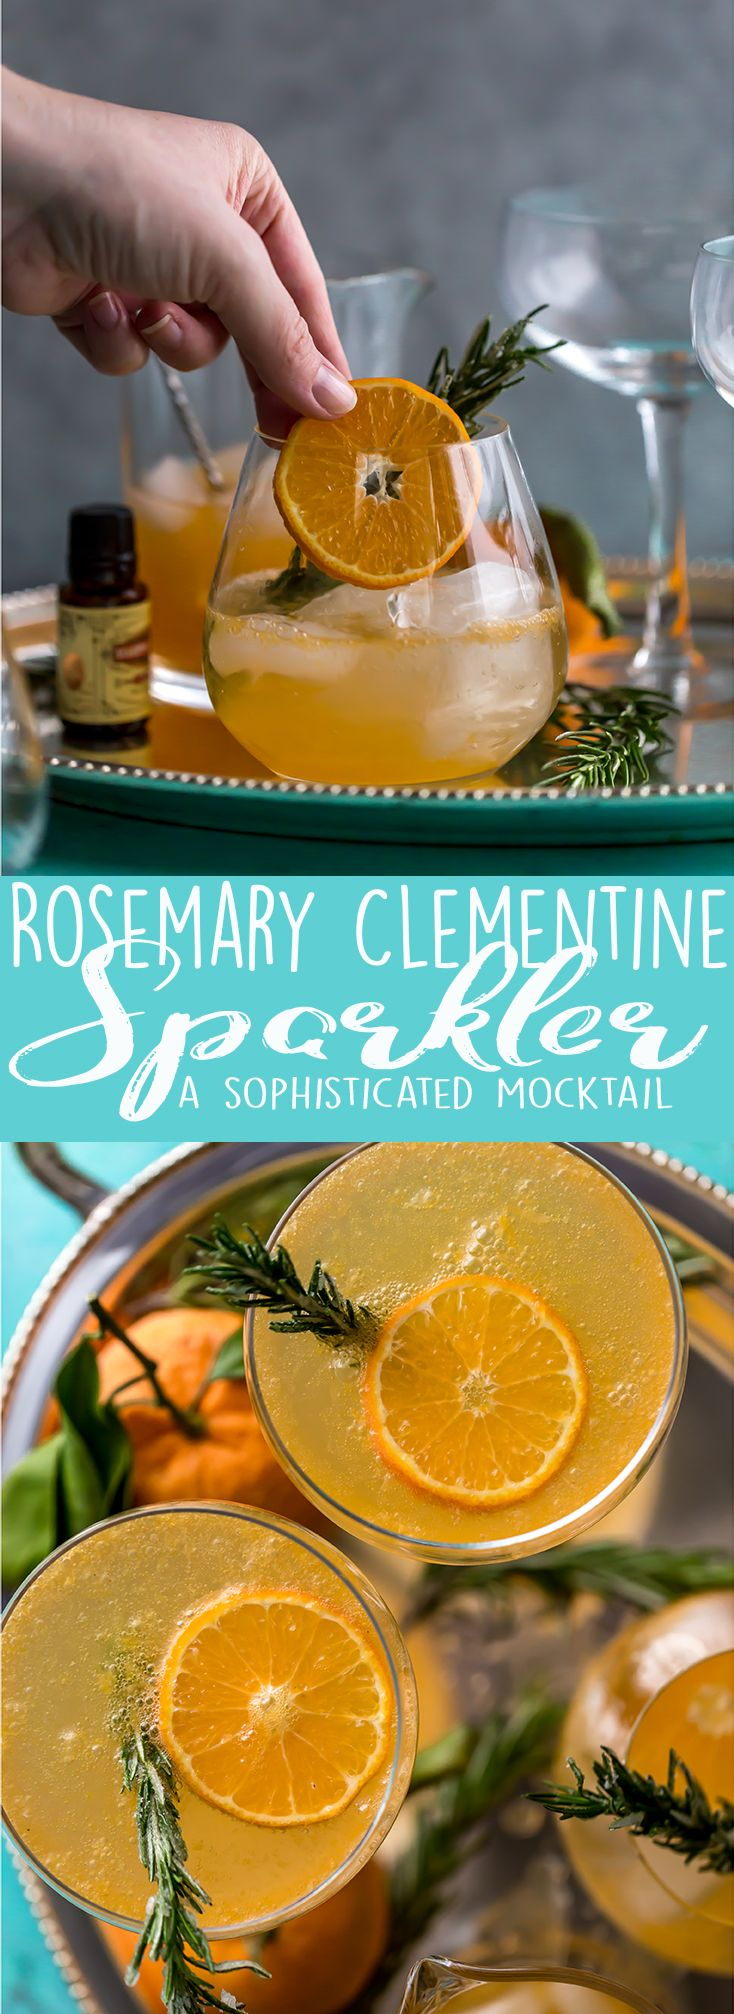 This non-alcoholic Rosemary Clementine Sparkler is a sophisticated mocktail perfect for the holidays. Non-Alcoholic Recipes | Pregnancy drinks | Drinks for teens | Baby Shower drinks | Dry January | Winter Mocktail | Non-alcoholic party drink | Sparkling mocktail | New Years Mocktail